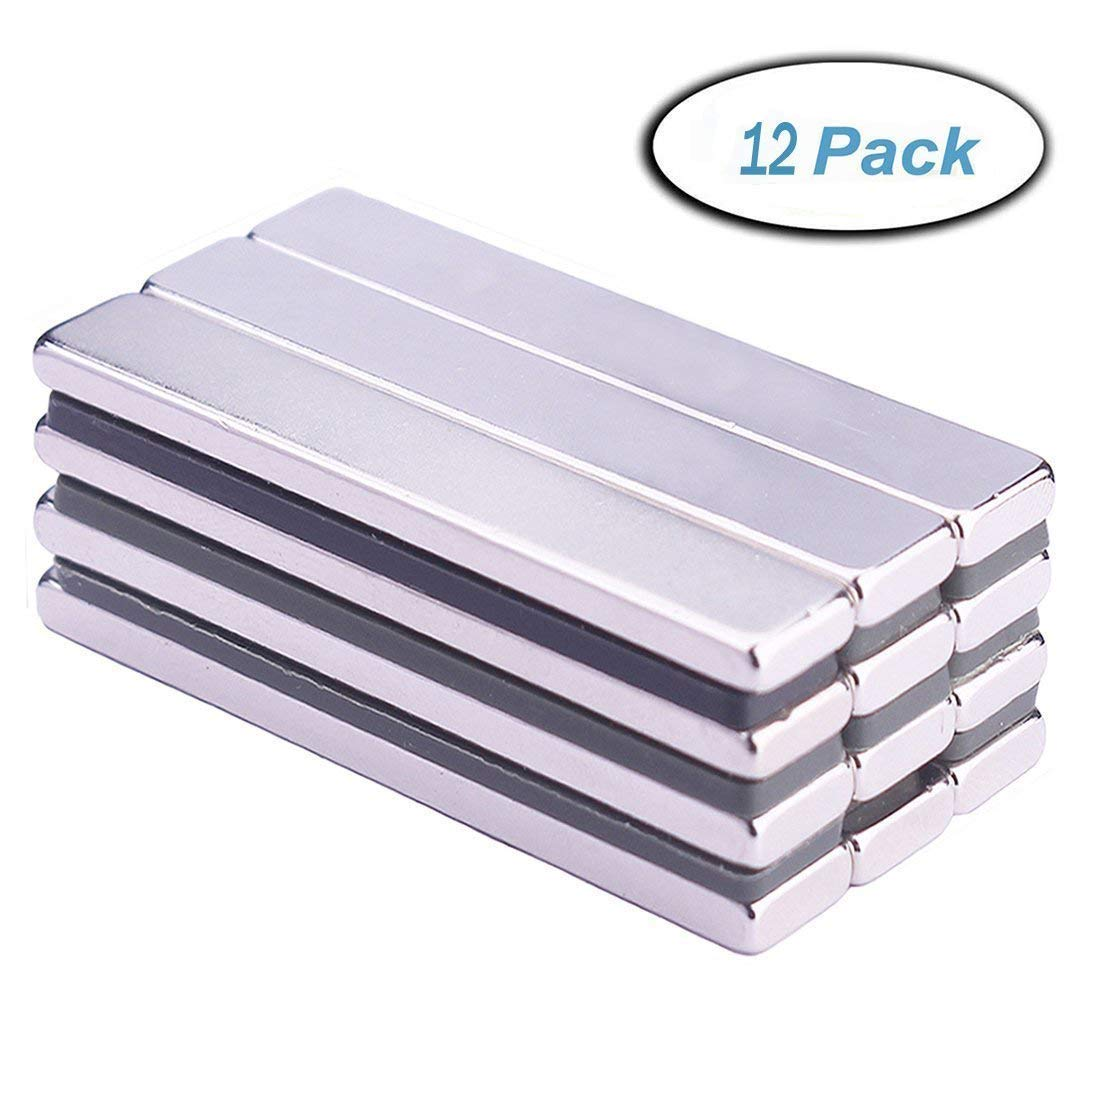 Neodymium Bar Magnets(12 Pieces), Strong Rare Earth Rectangular Block Neodymium Magnets, DIY, Building, Scientific, Craft and Office Magnets- 60 x 10 x 3 mm